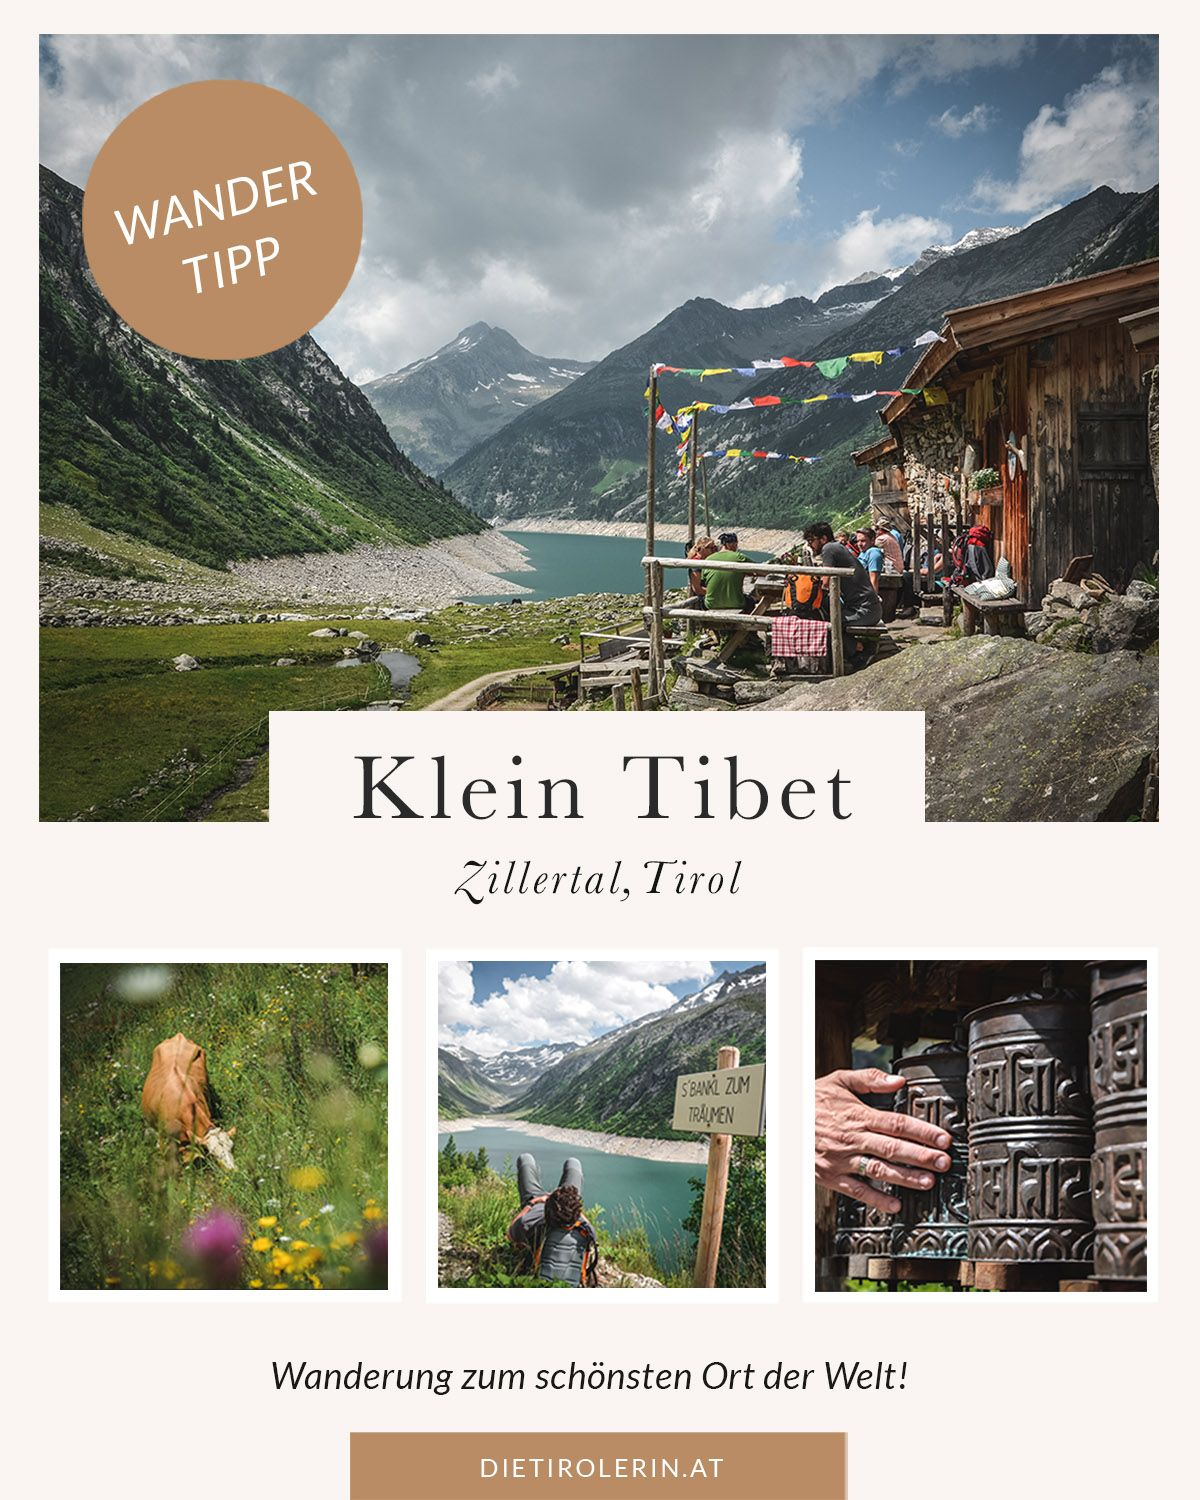 , KLEIN TIBET im Zillertal | Tirol, My Travels Blog 2020, My Travels Blog 2020